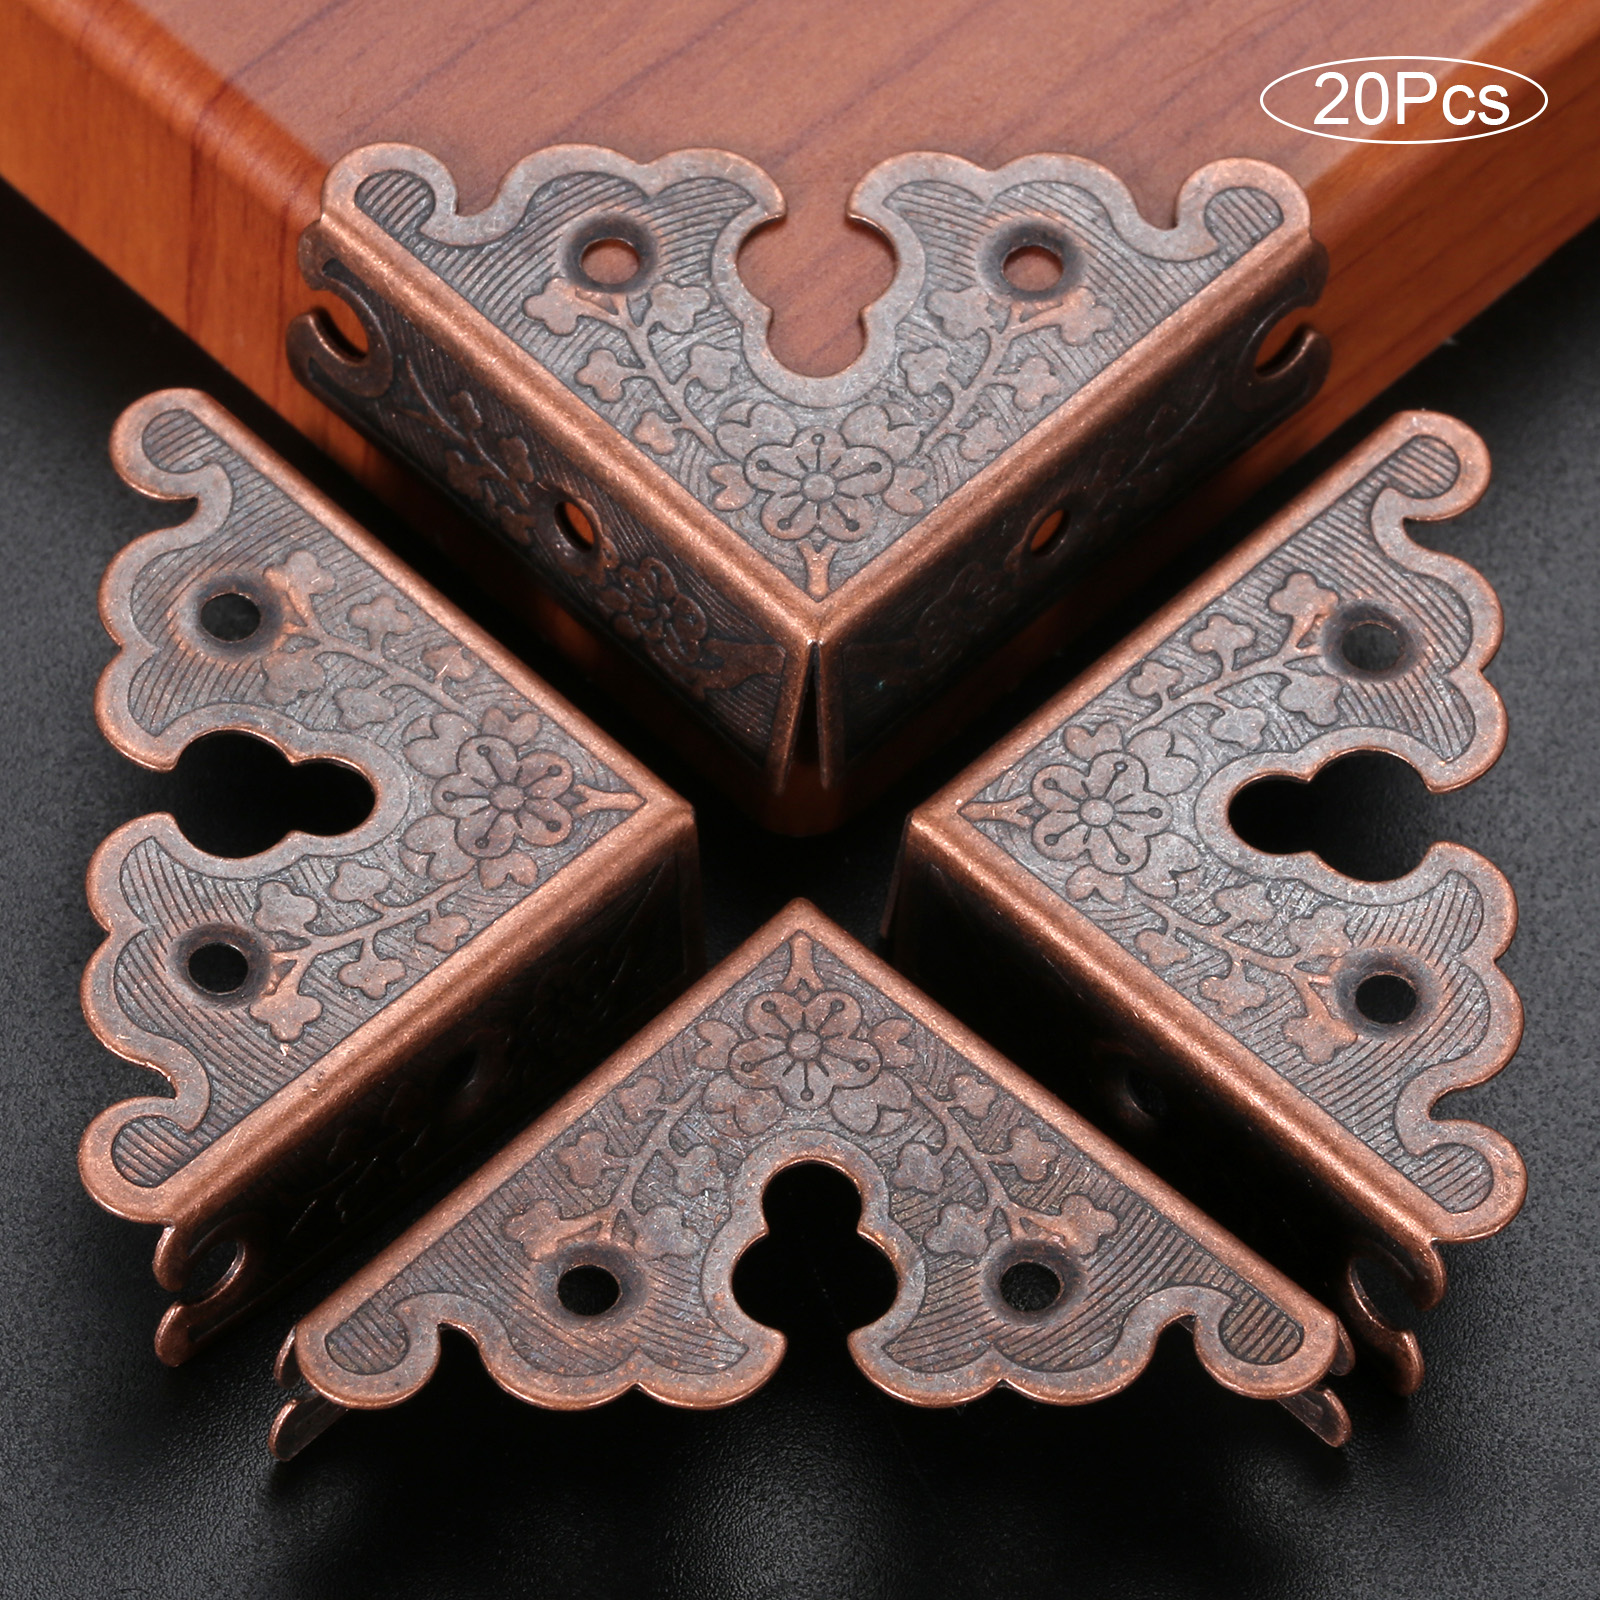 DRELD 20pcs Antique Iron Triangle Corner Wooden Box Corners Furniture Protector Decor Print Pattern Carved Protectors 34mm